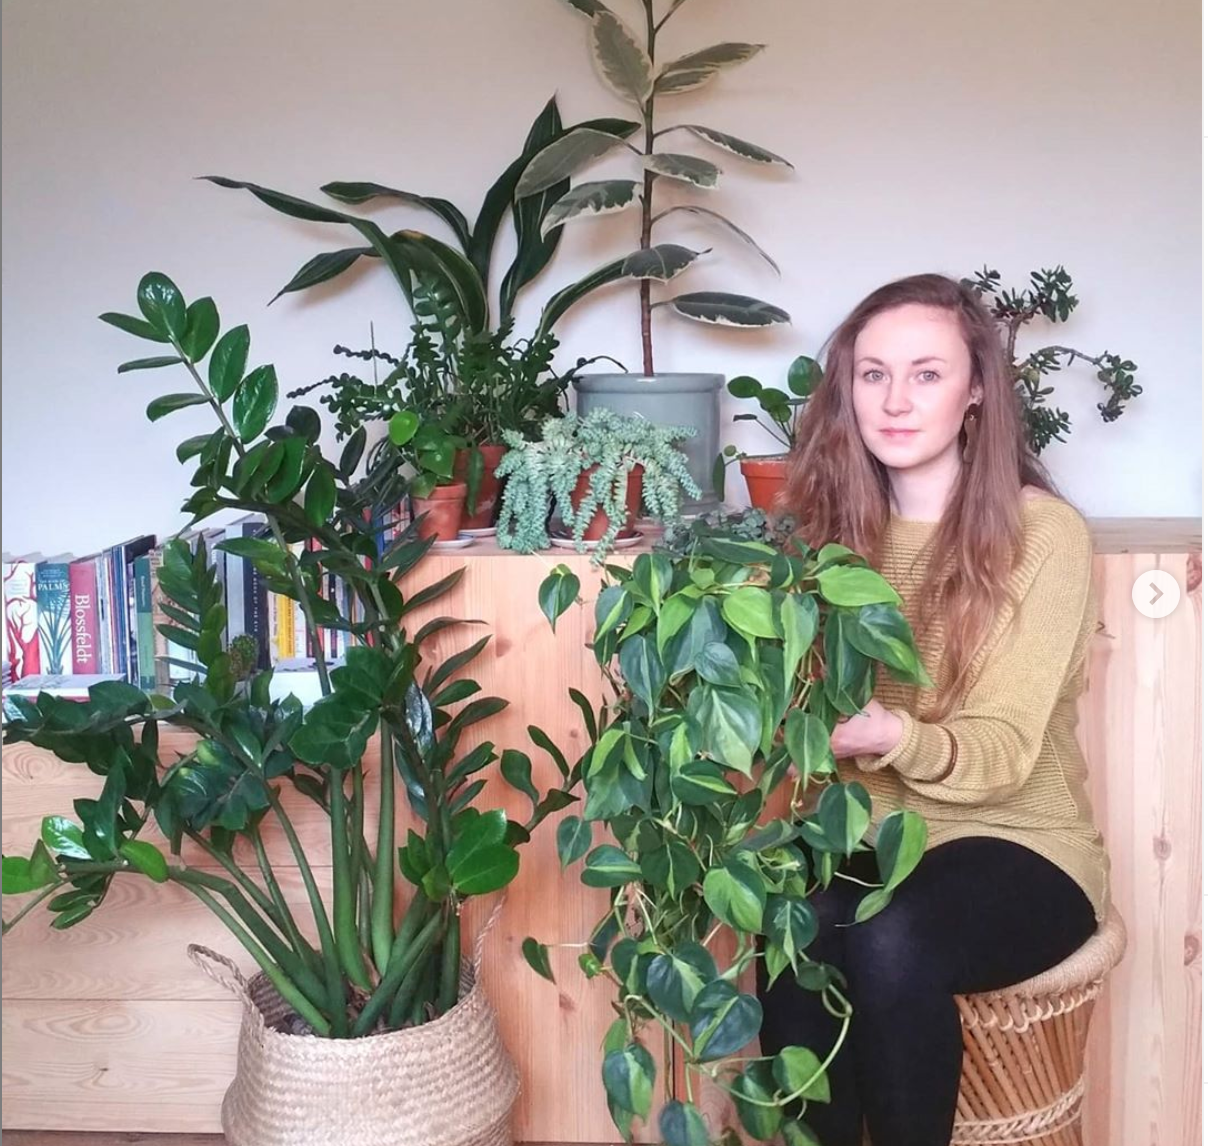 Above: Lianne Harrison, founder of Paper Whale (and whose design work forms the livery of The Retas this year), with some of her plant 'babies'.